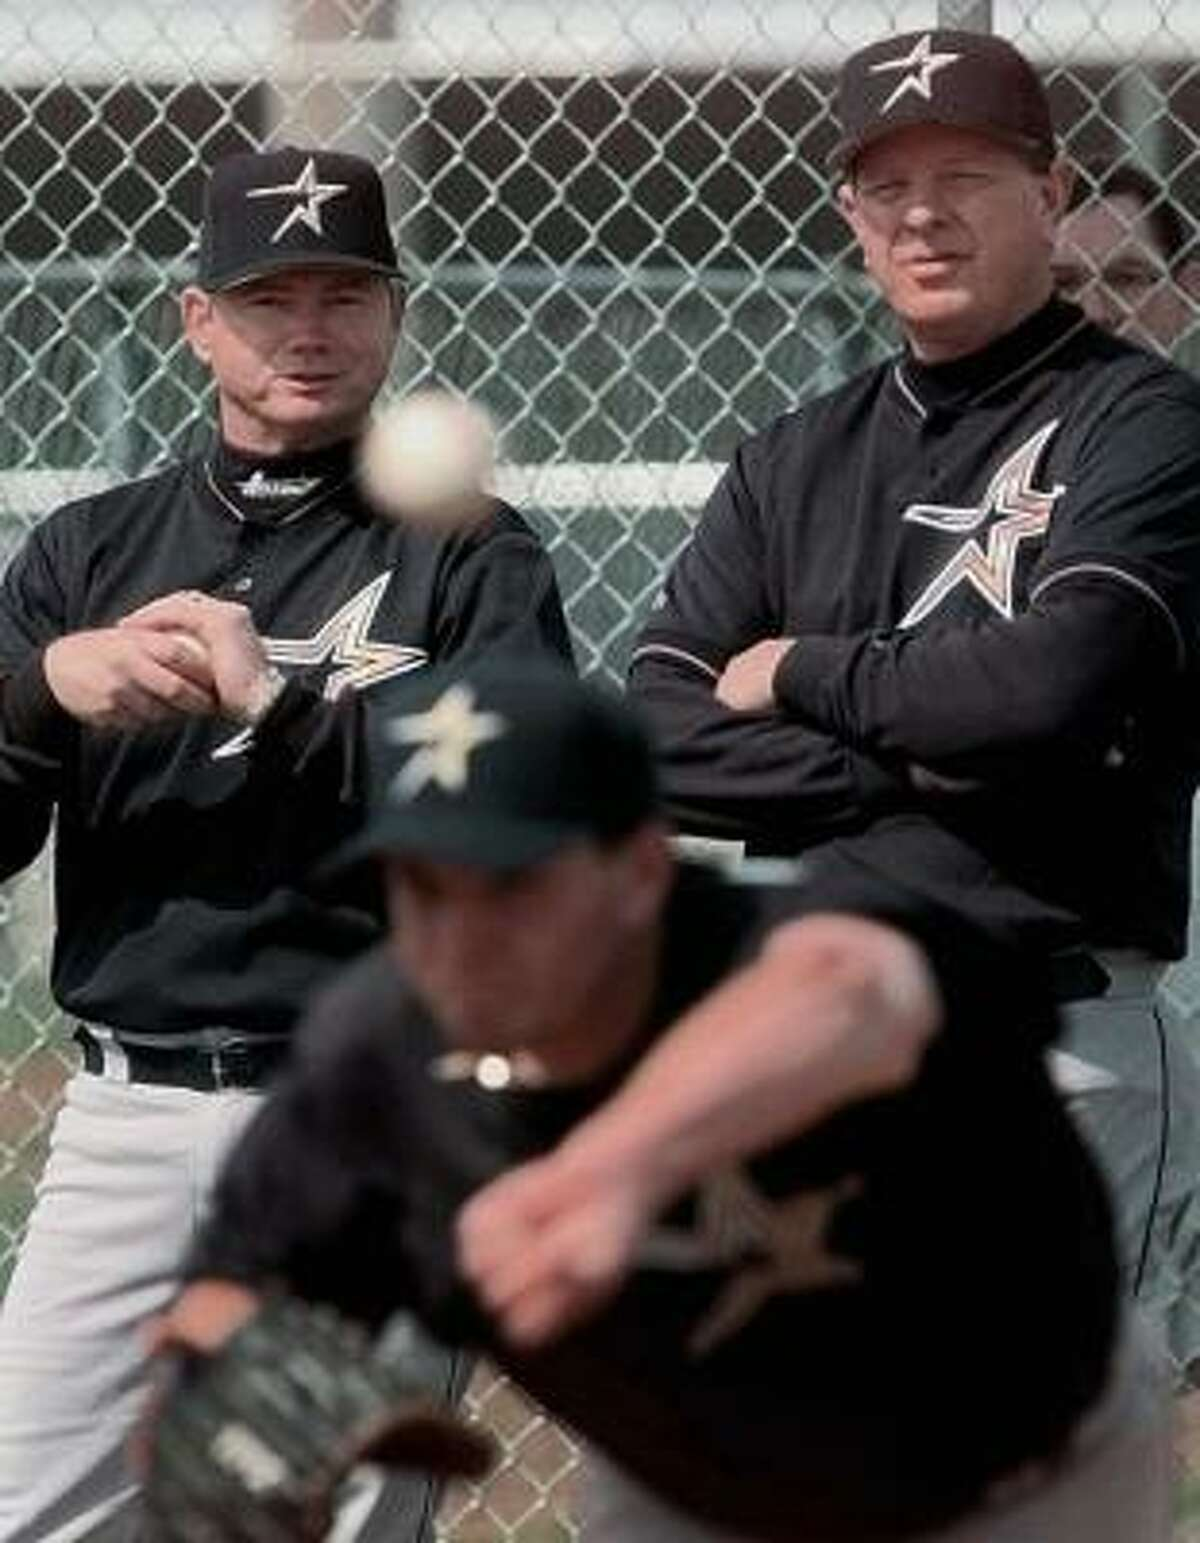 Vern Ruhle, left, with Larry Dierker, helped to develop players like Billy Wagner for the Astros organization.